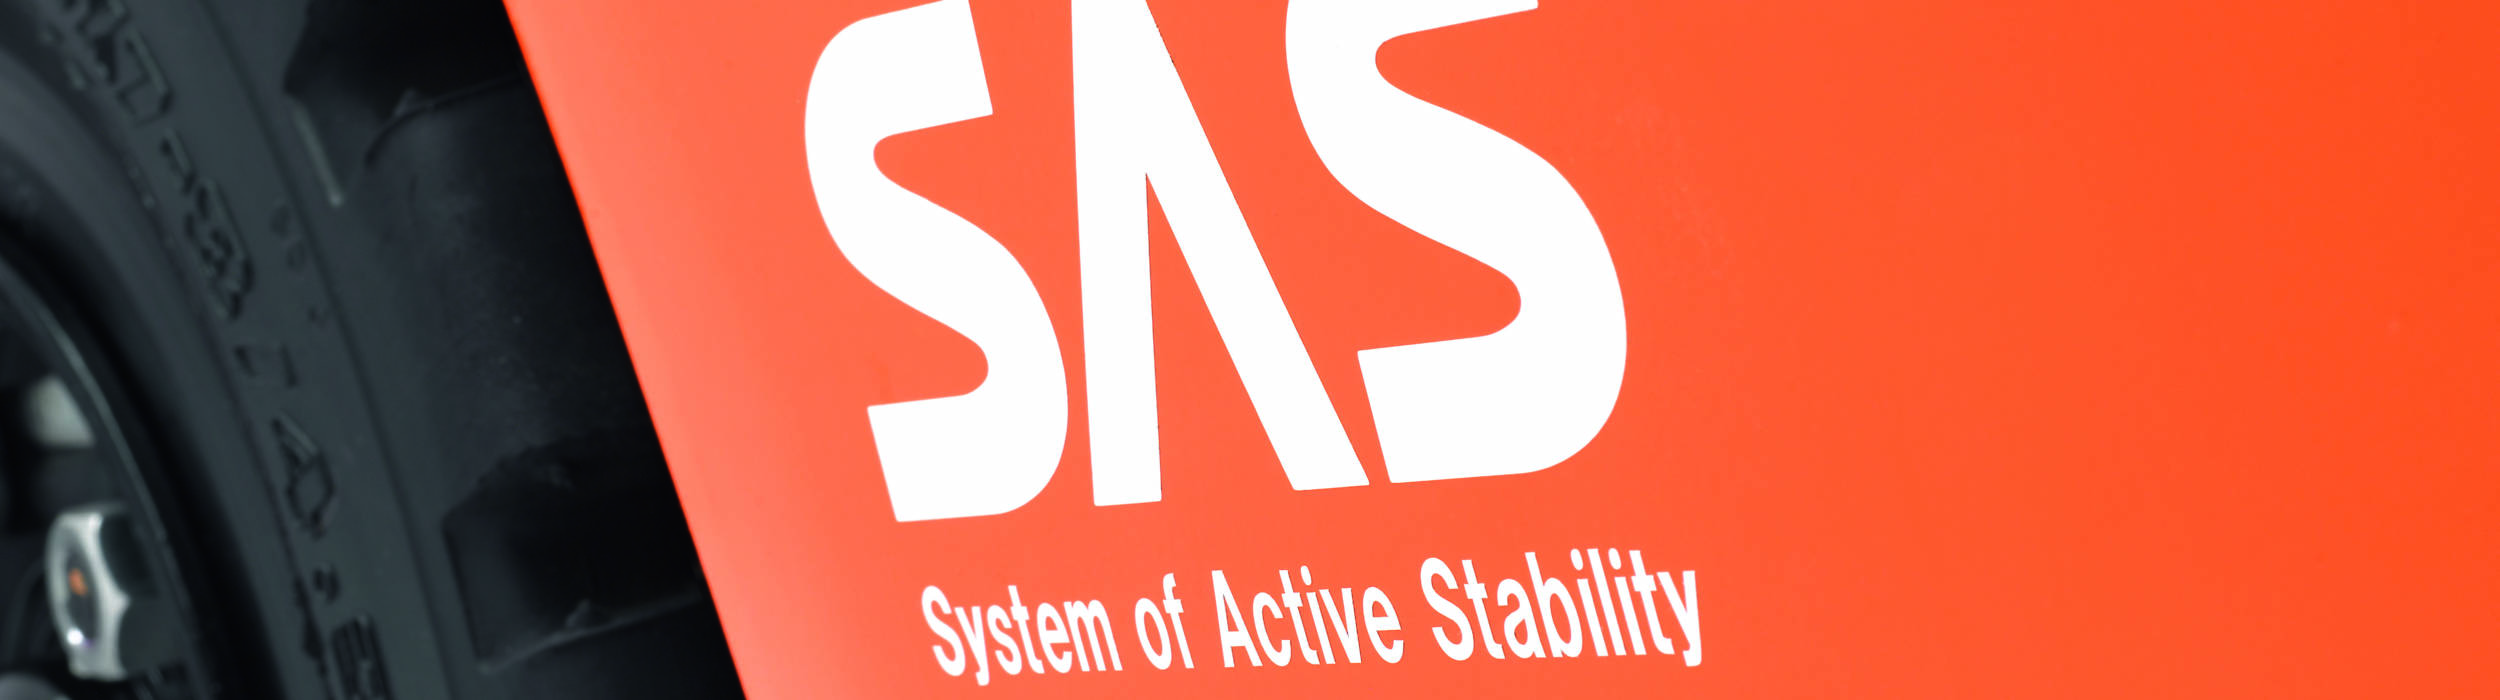 SAS - System of active stability